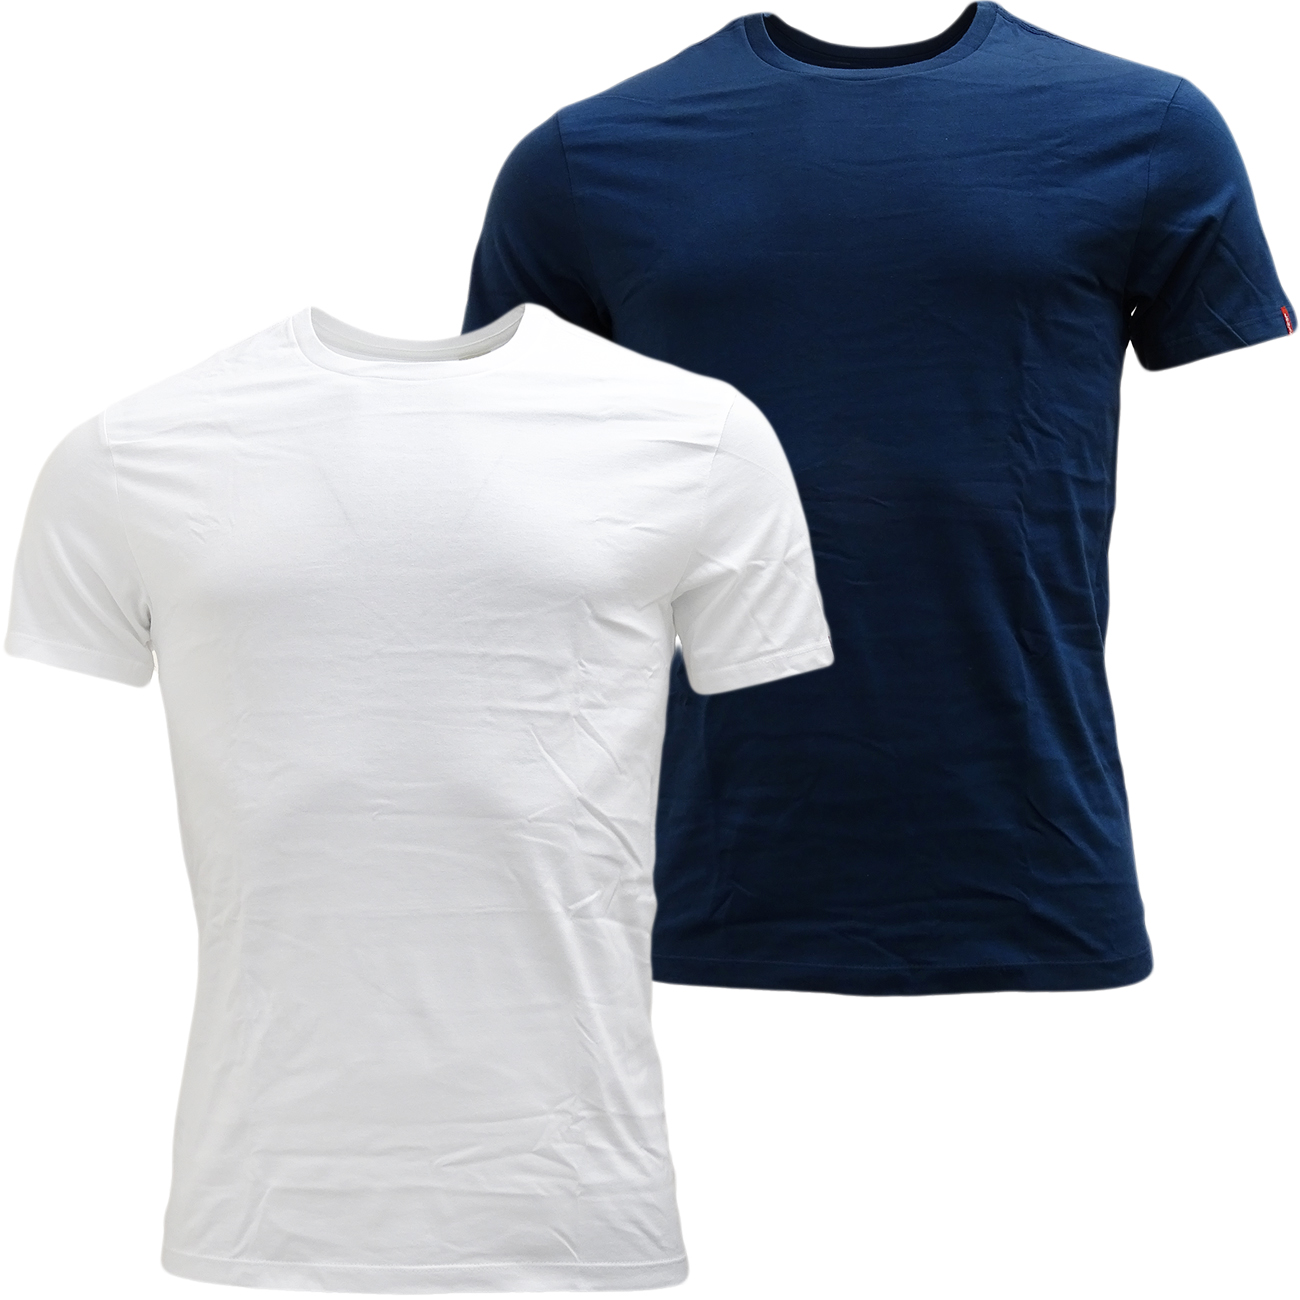 Slim Fit Slim-fit tees gained massive popularity in mainstream fashion of the late '90's and early 's, and we saw this translate into the wholesale industry. Our slim fit styles are designed to lay close to the body, which is great for showing off a women's curves.